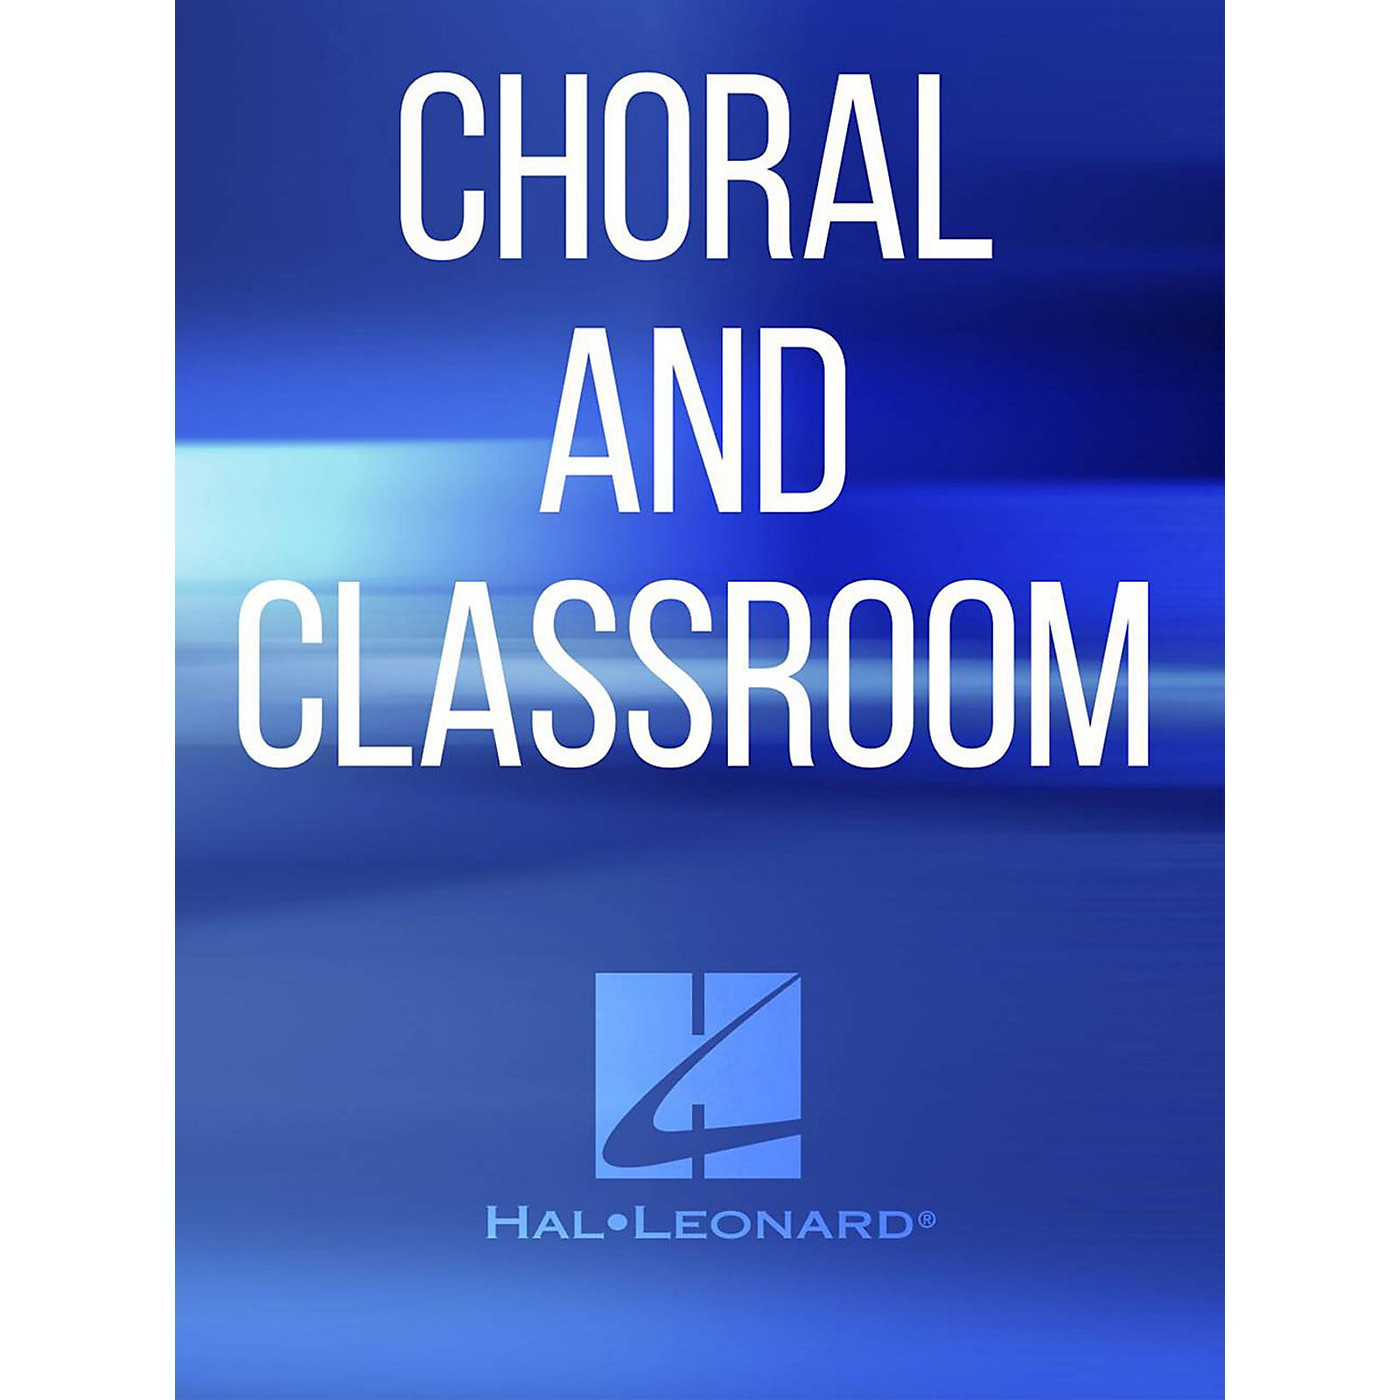 Hal Leonard Thought Of My Thoughts SATB Composed by Kenneth Mahy thumbnail